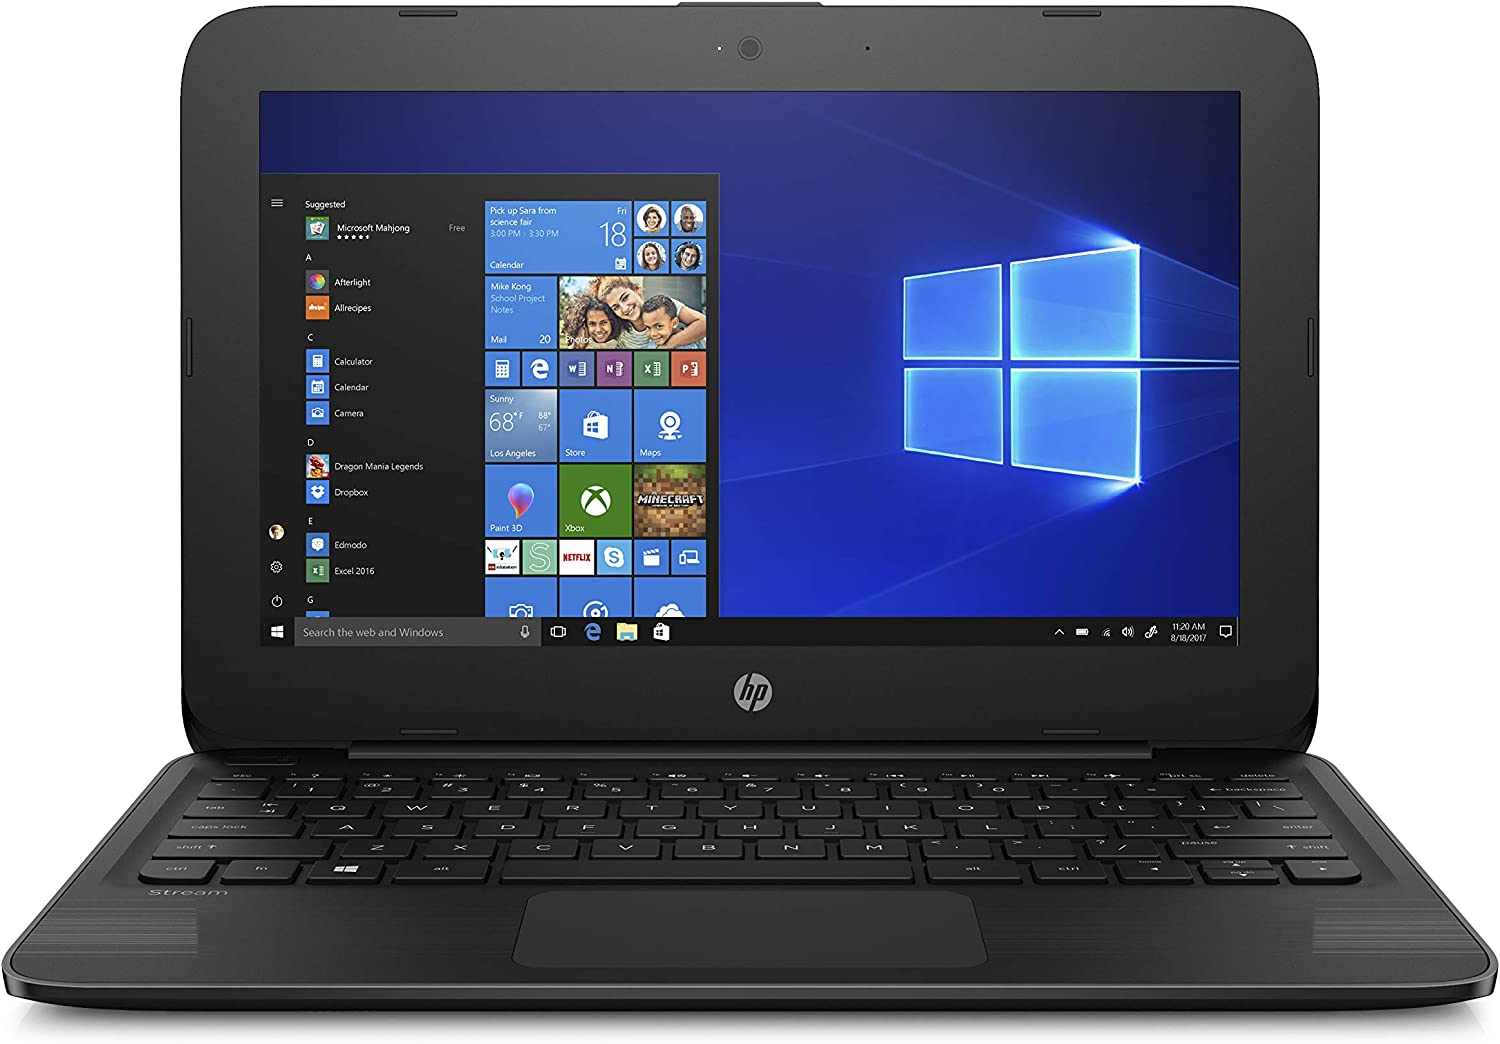 "HP Stream Laptop PC 11.6"" Intel N4000 4GB DDR4 SDRAM 32GB eMMC Includes Office 365 Personal for One Year, Jet Black"